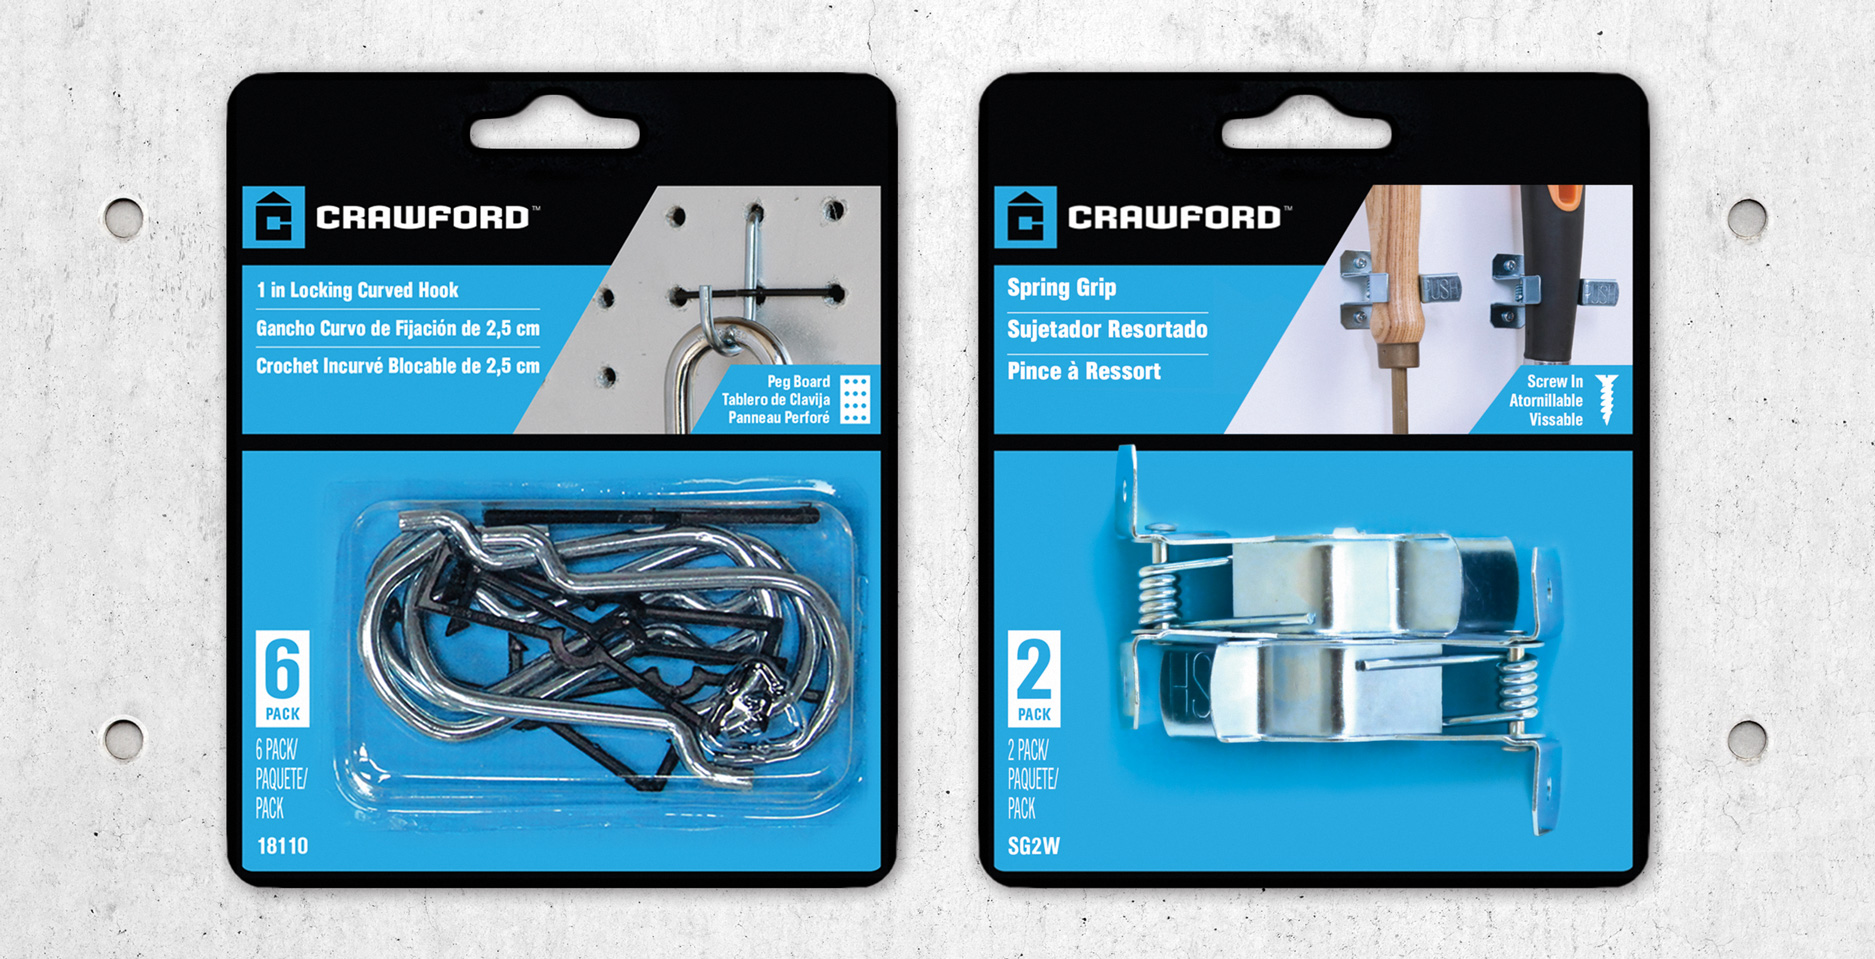 crawford-packaging-design-mockup-retail-branding-rebrand-design-graphics-hardware-industrial-modern